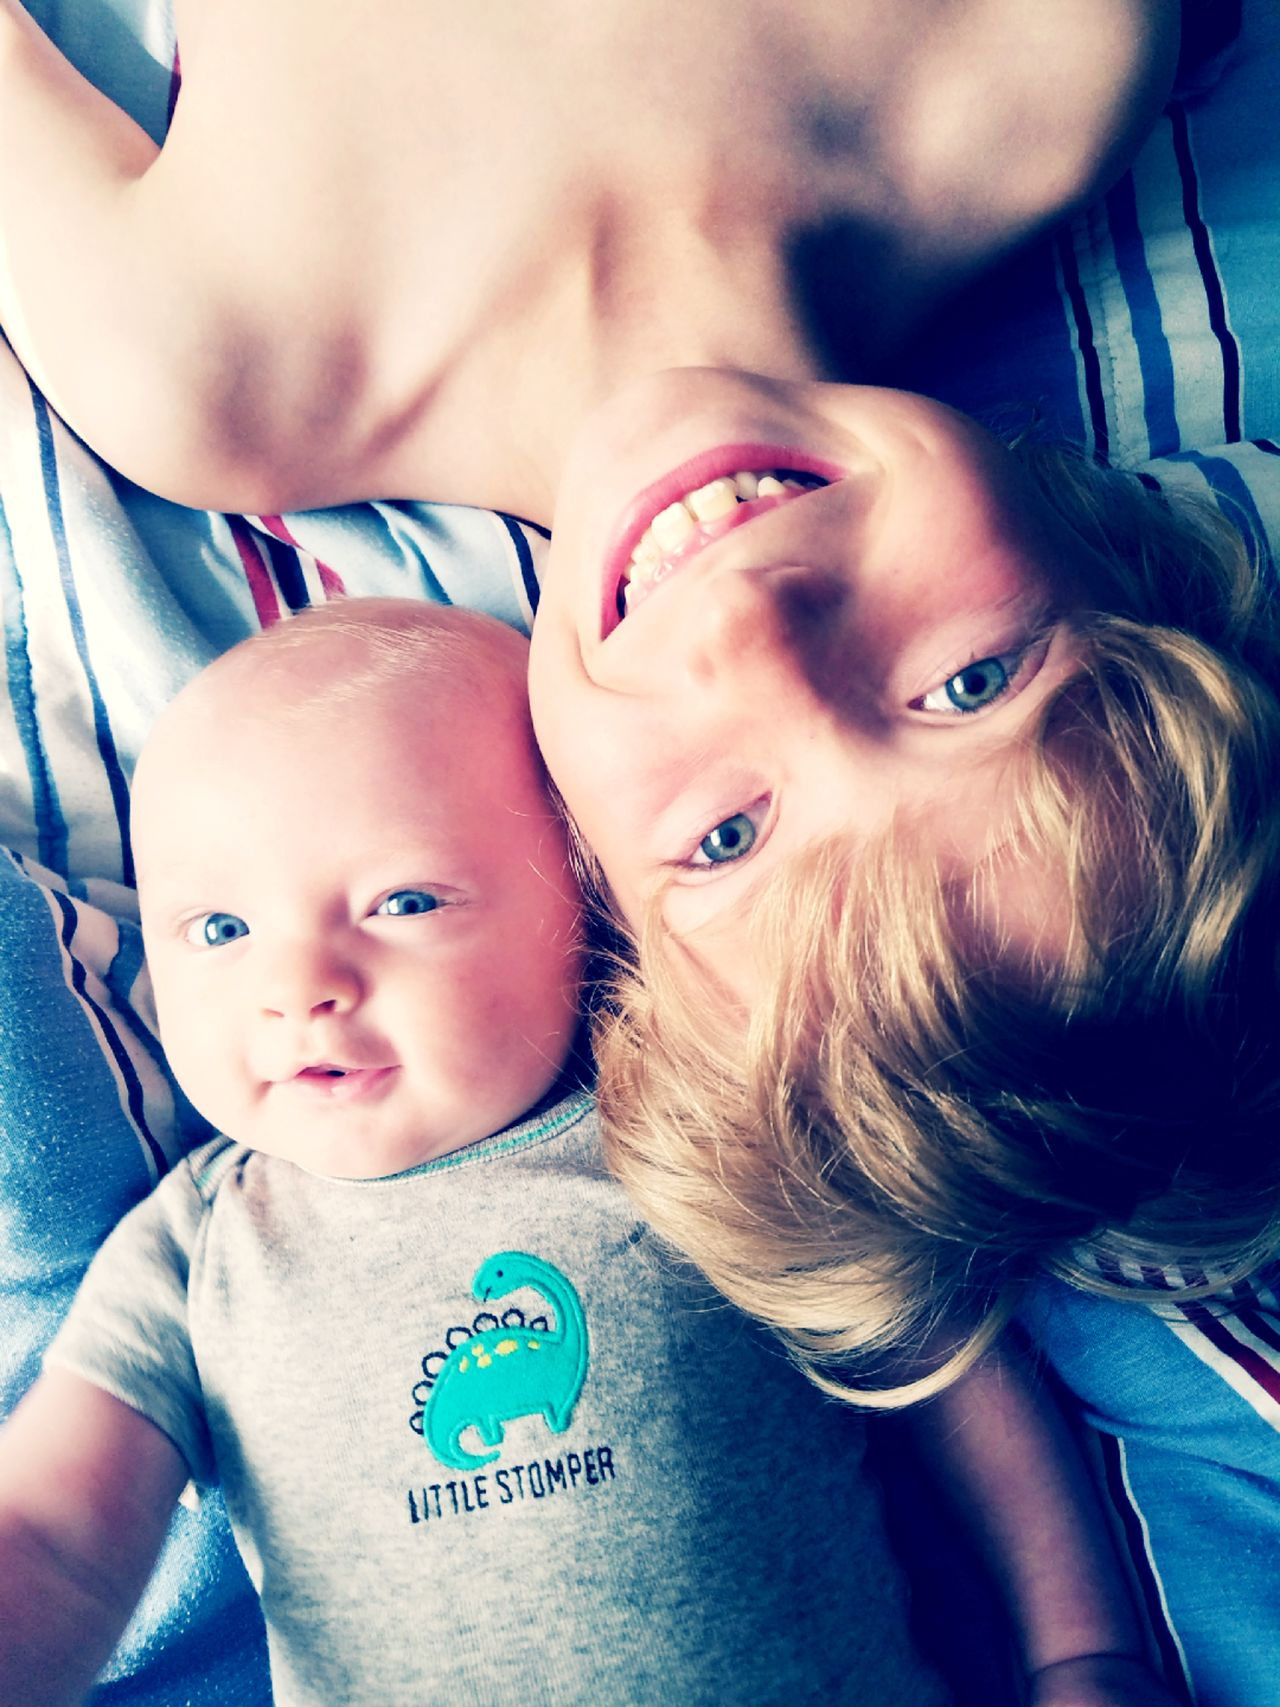 Big J and little J. Cousins. Looking At Camera Two People Childhood Child Portrait Togetherness People Love Headshot Bonding Android Family Lying Down Cute Innocence Boys Cousins